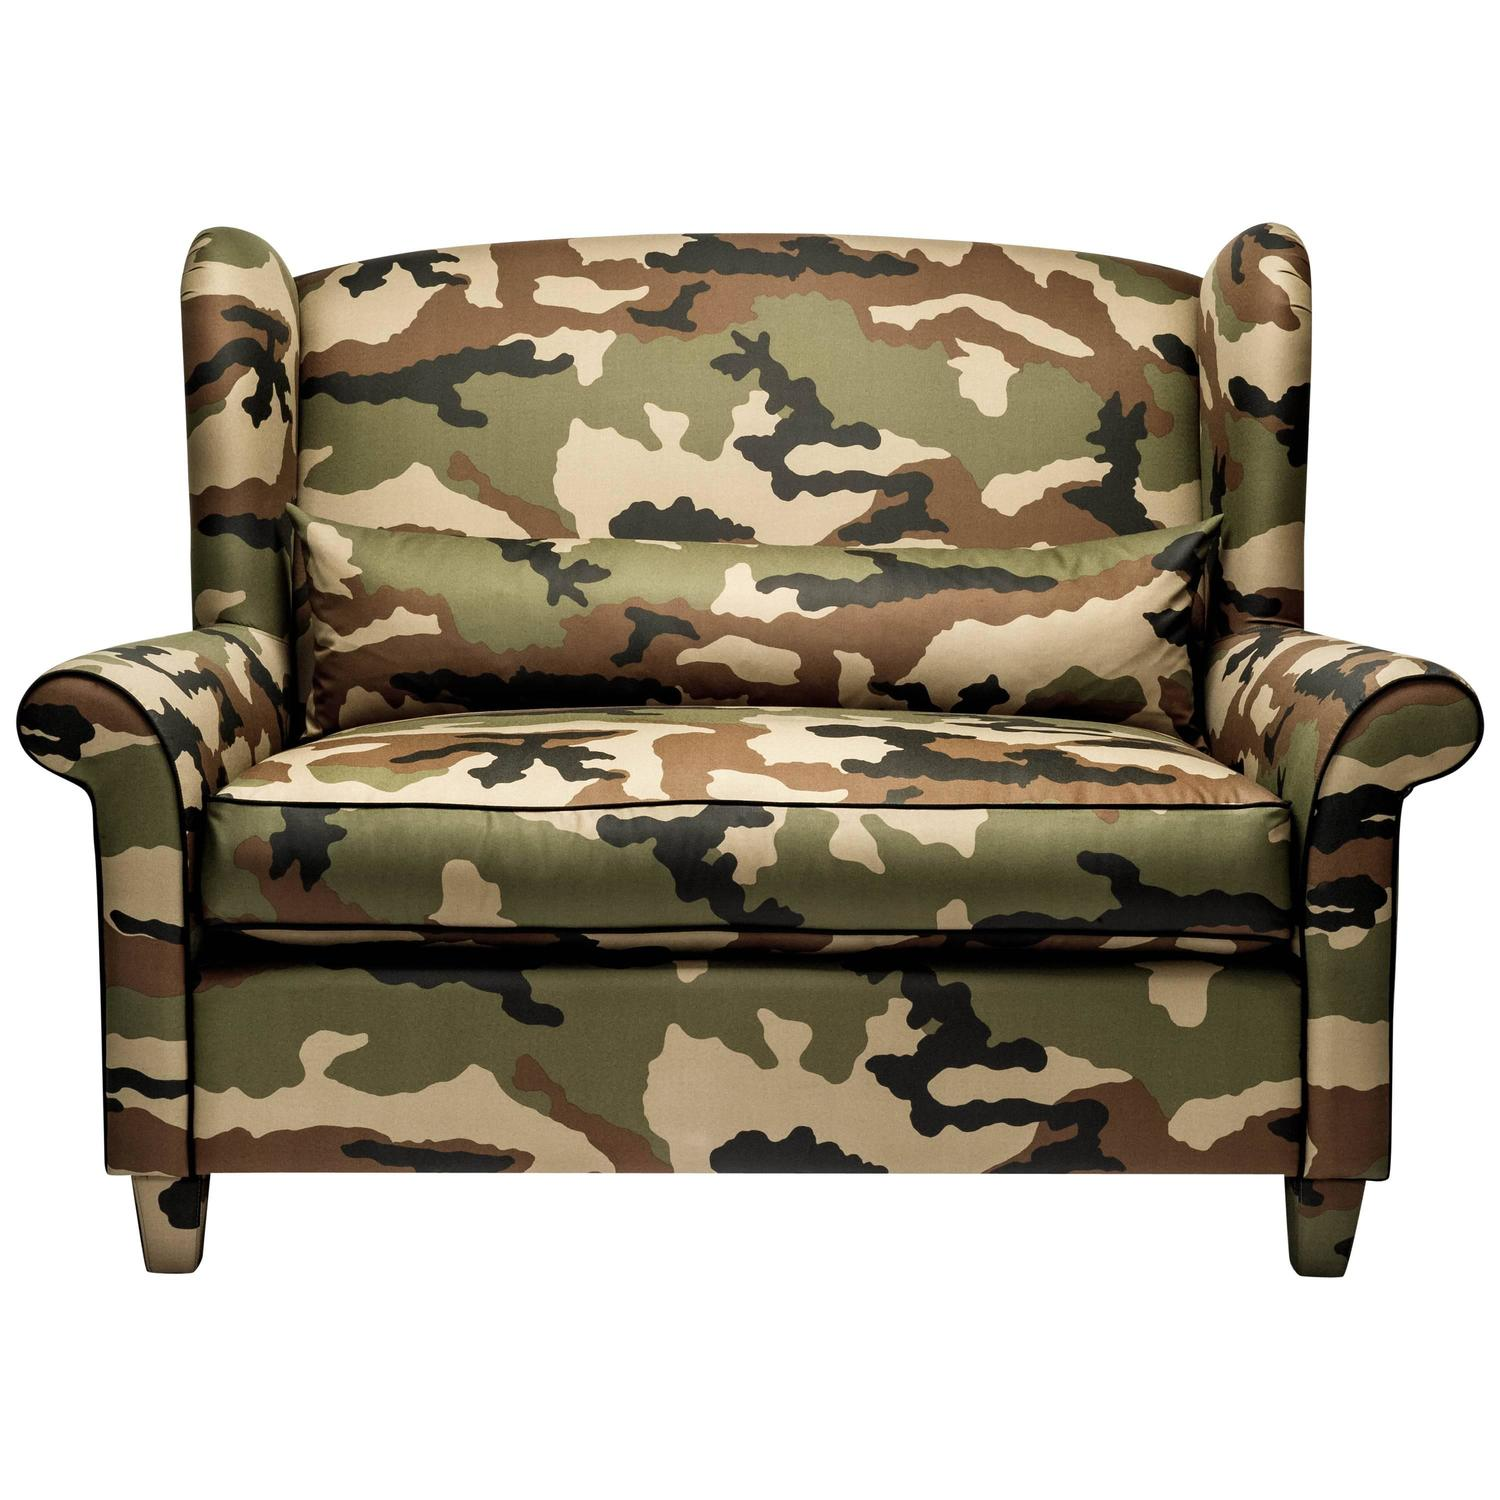 Alexander Camouflage Military Loveseat By Gianni G Pellini For Spazio Pontaccio For Sale At 1stdibs